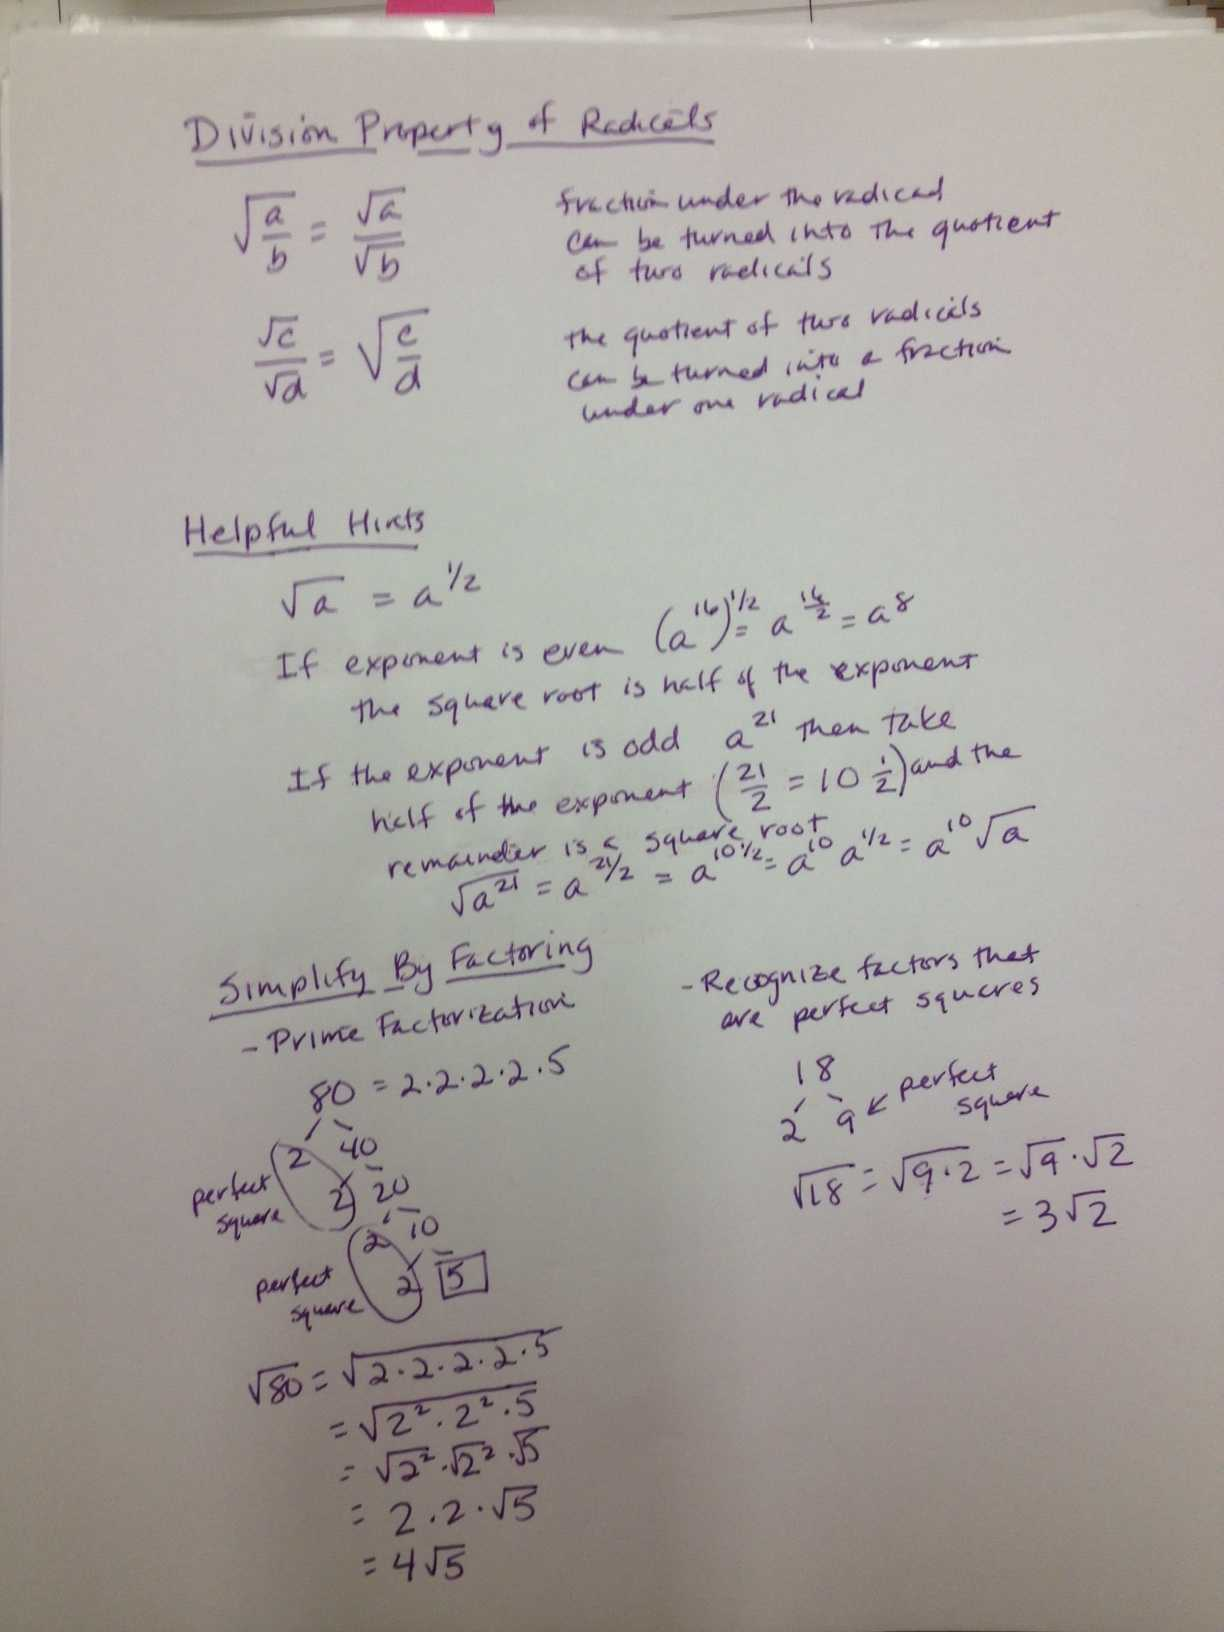 Radicals and Rational Exponents Worksheet Answers or Exelent Simplifying Radicals Worksheet No Variables Picture